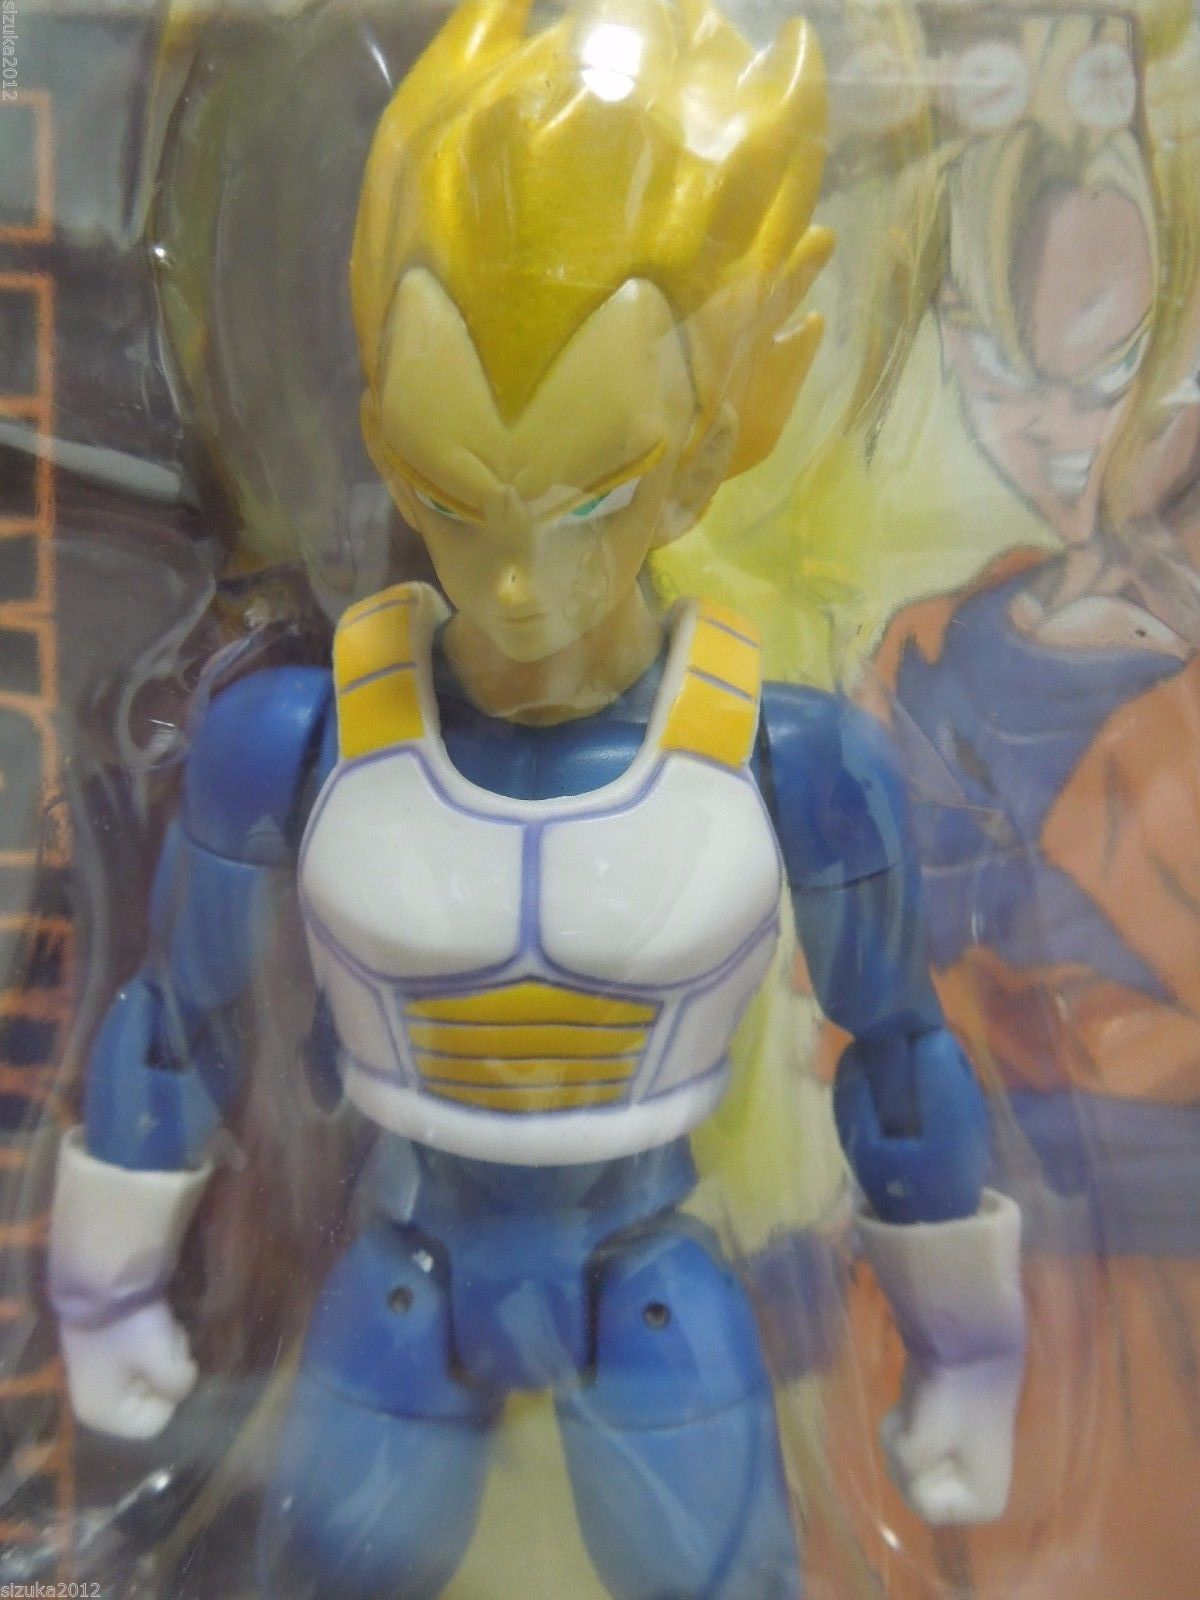 Ultimate Figure Full Action – Vol. 5 Super Saiyan Vegeta